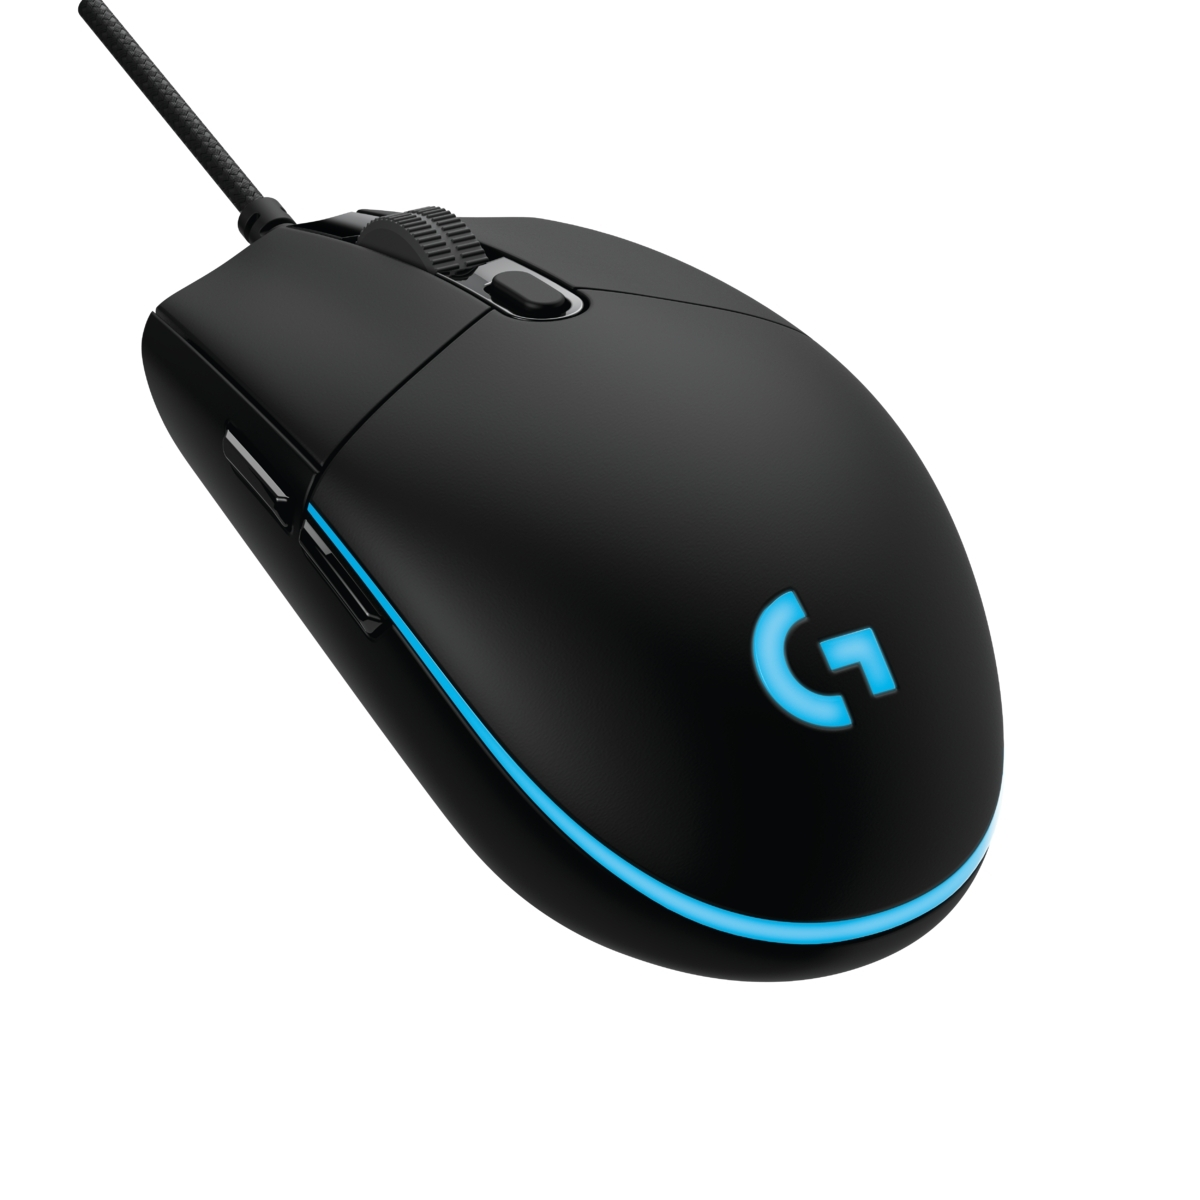 Logitech G Introduces New Gaming Mouse Designed With And For Wireless Genius Professional Esports Players Business Wire